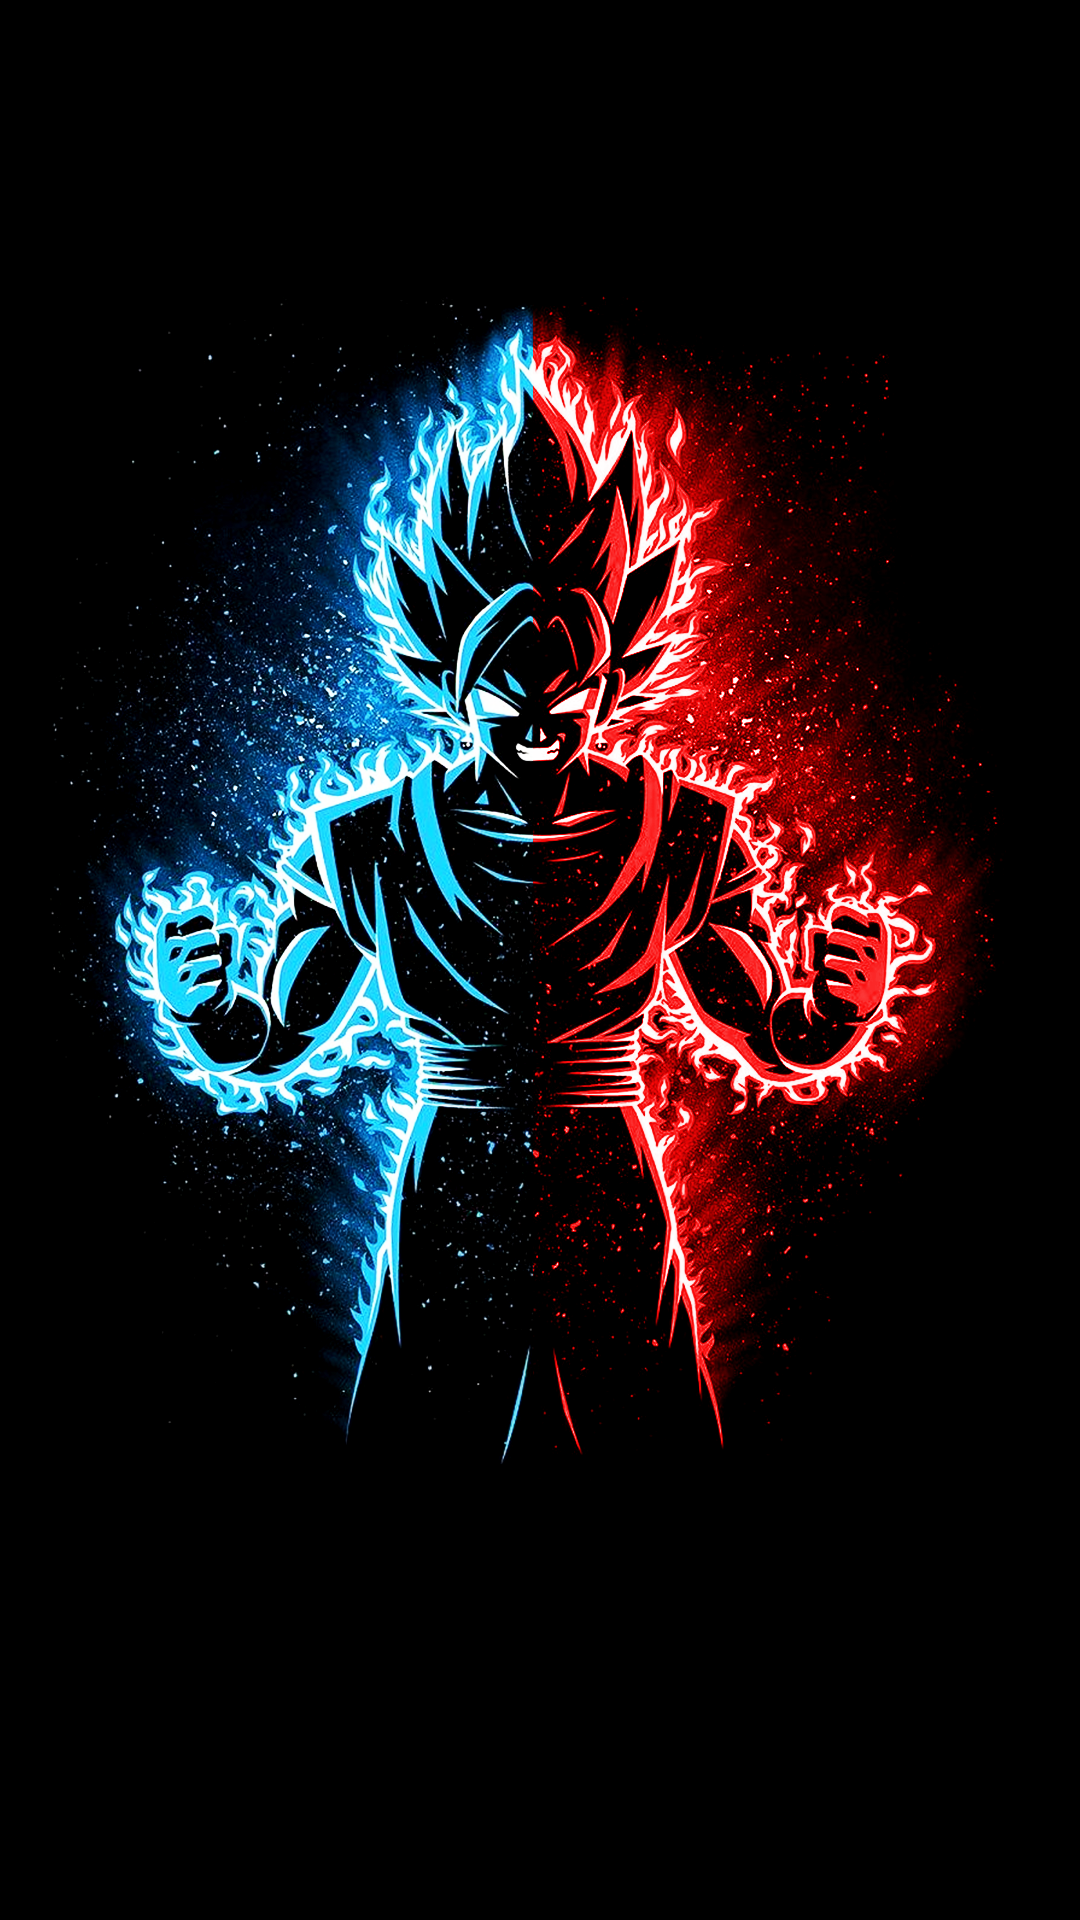 Vegito 1080x1920 I Redd It Submitted By Deathshotcs To R Amoledbackgrounds 1 Comments Dragon Ball Artwork Dragon Ball Super Wallpapers Dragon Ball Super